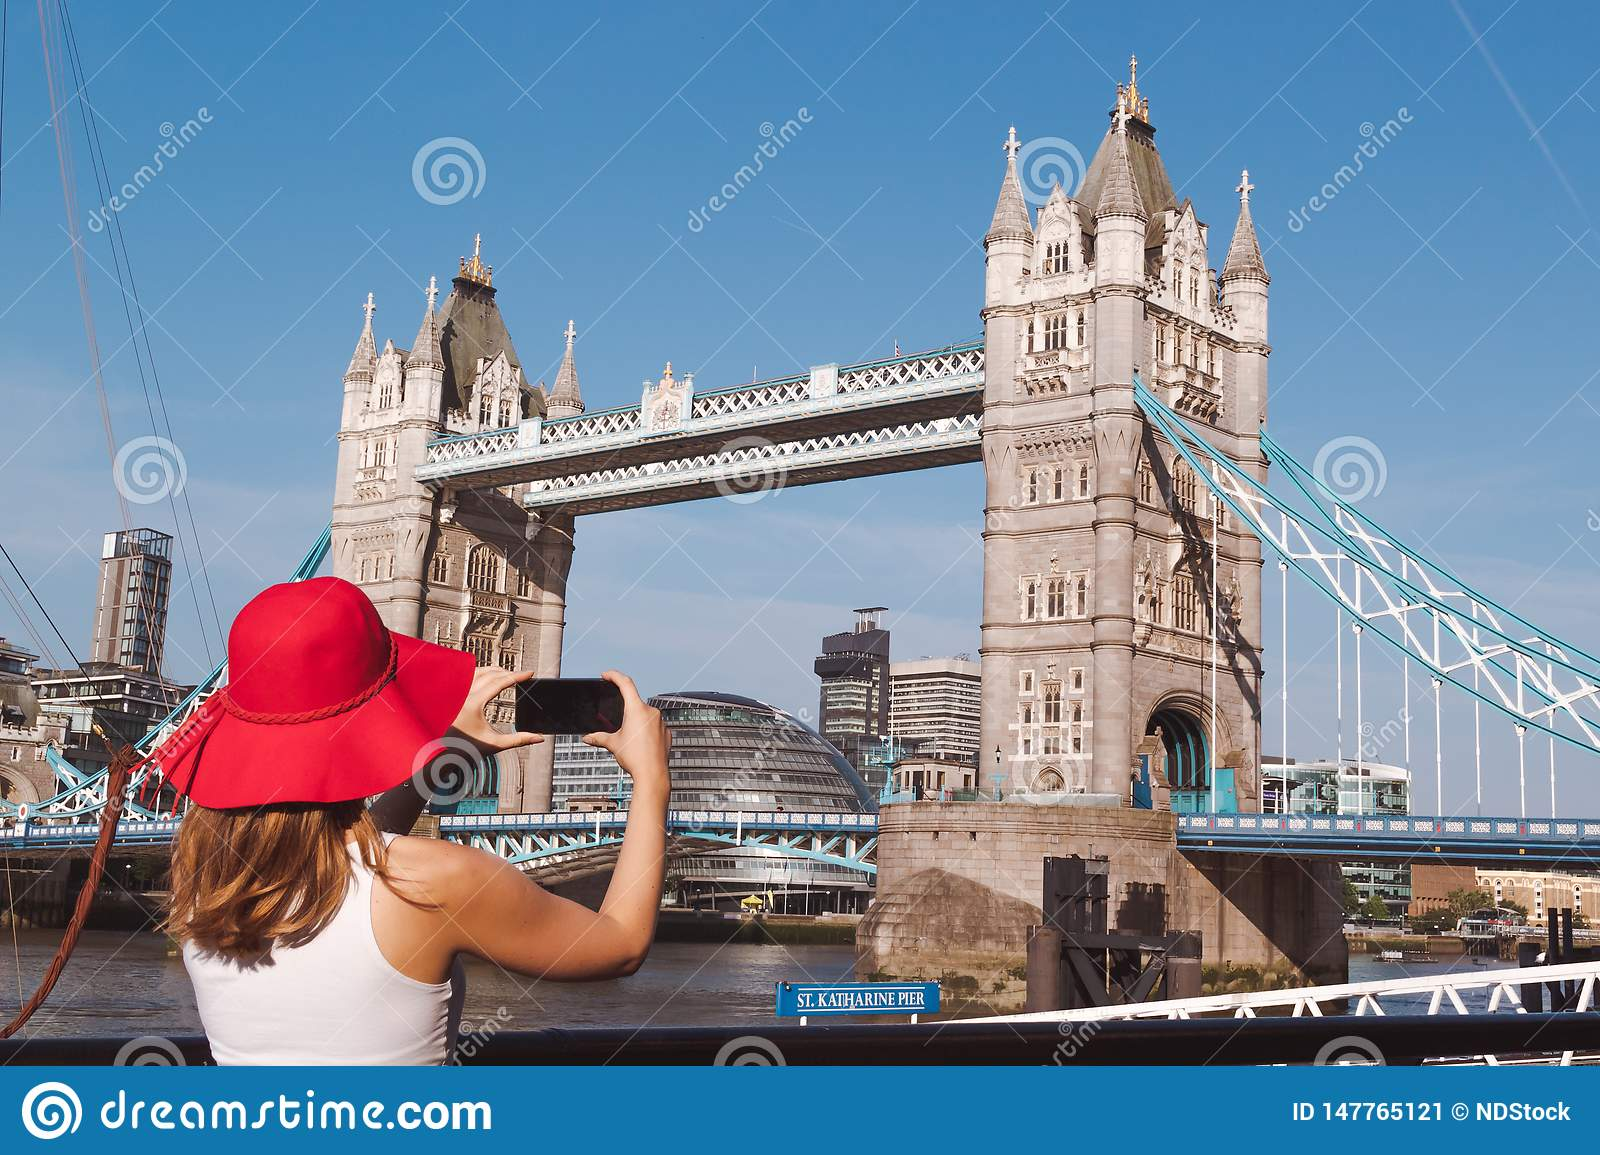 Young woman with red hat taking a photo of the Tower bridge in London